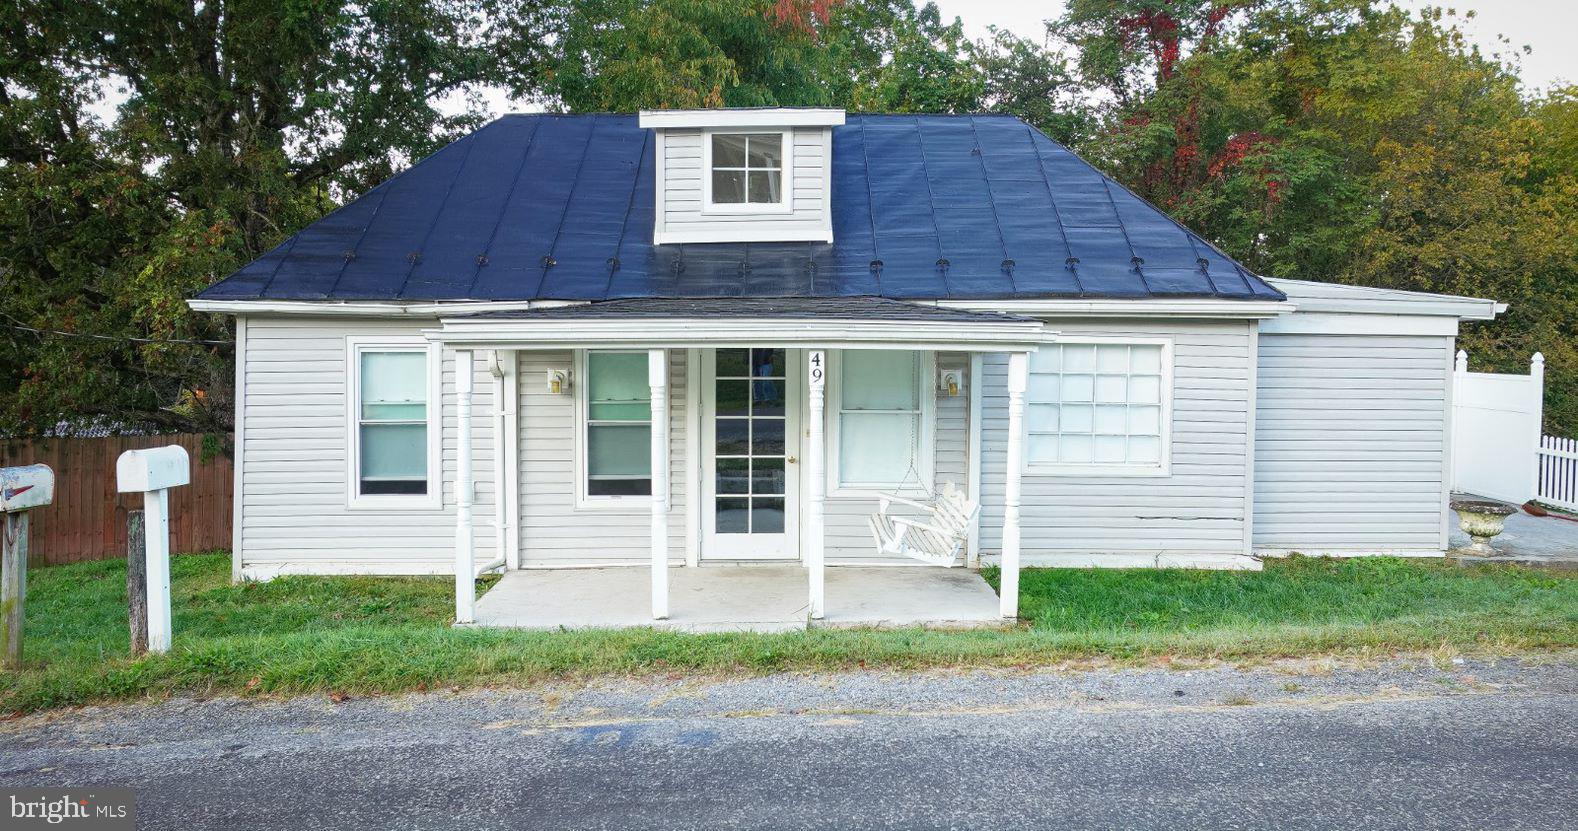 Adorable bungalow located in Bentonville.    No need to rent when you can buy.  Home offers 2 bedroom 1 full bath.  Located close to the Shenandoah River and Andy Guest State Park.